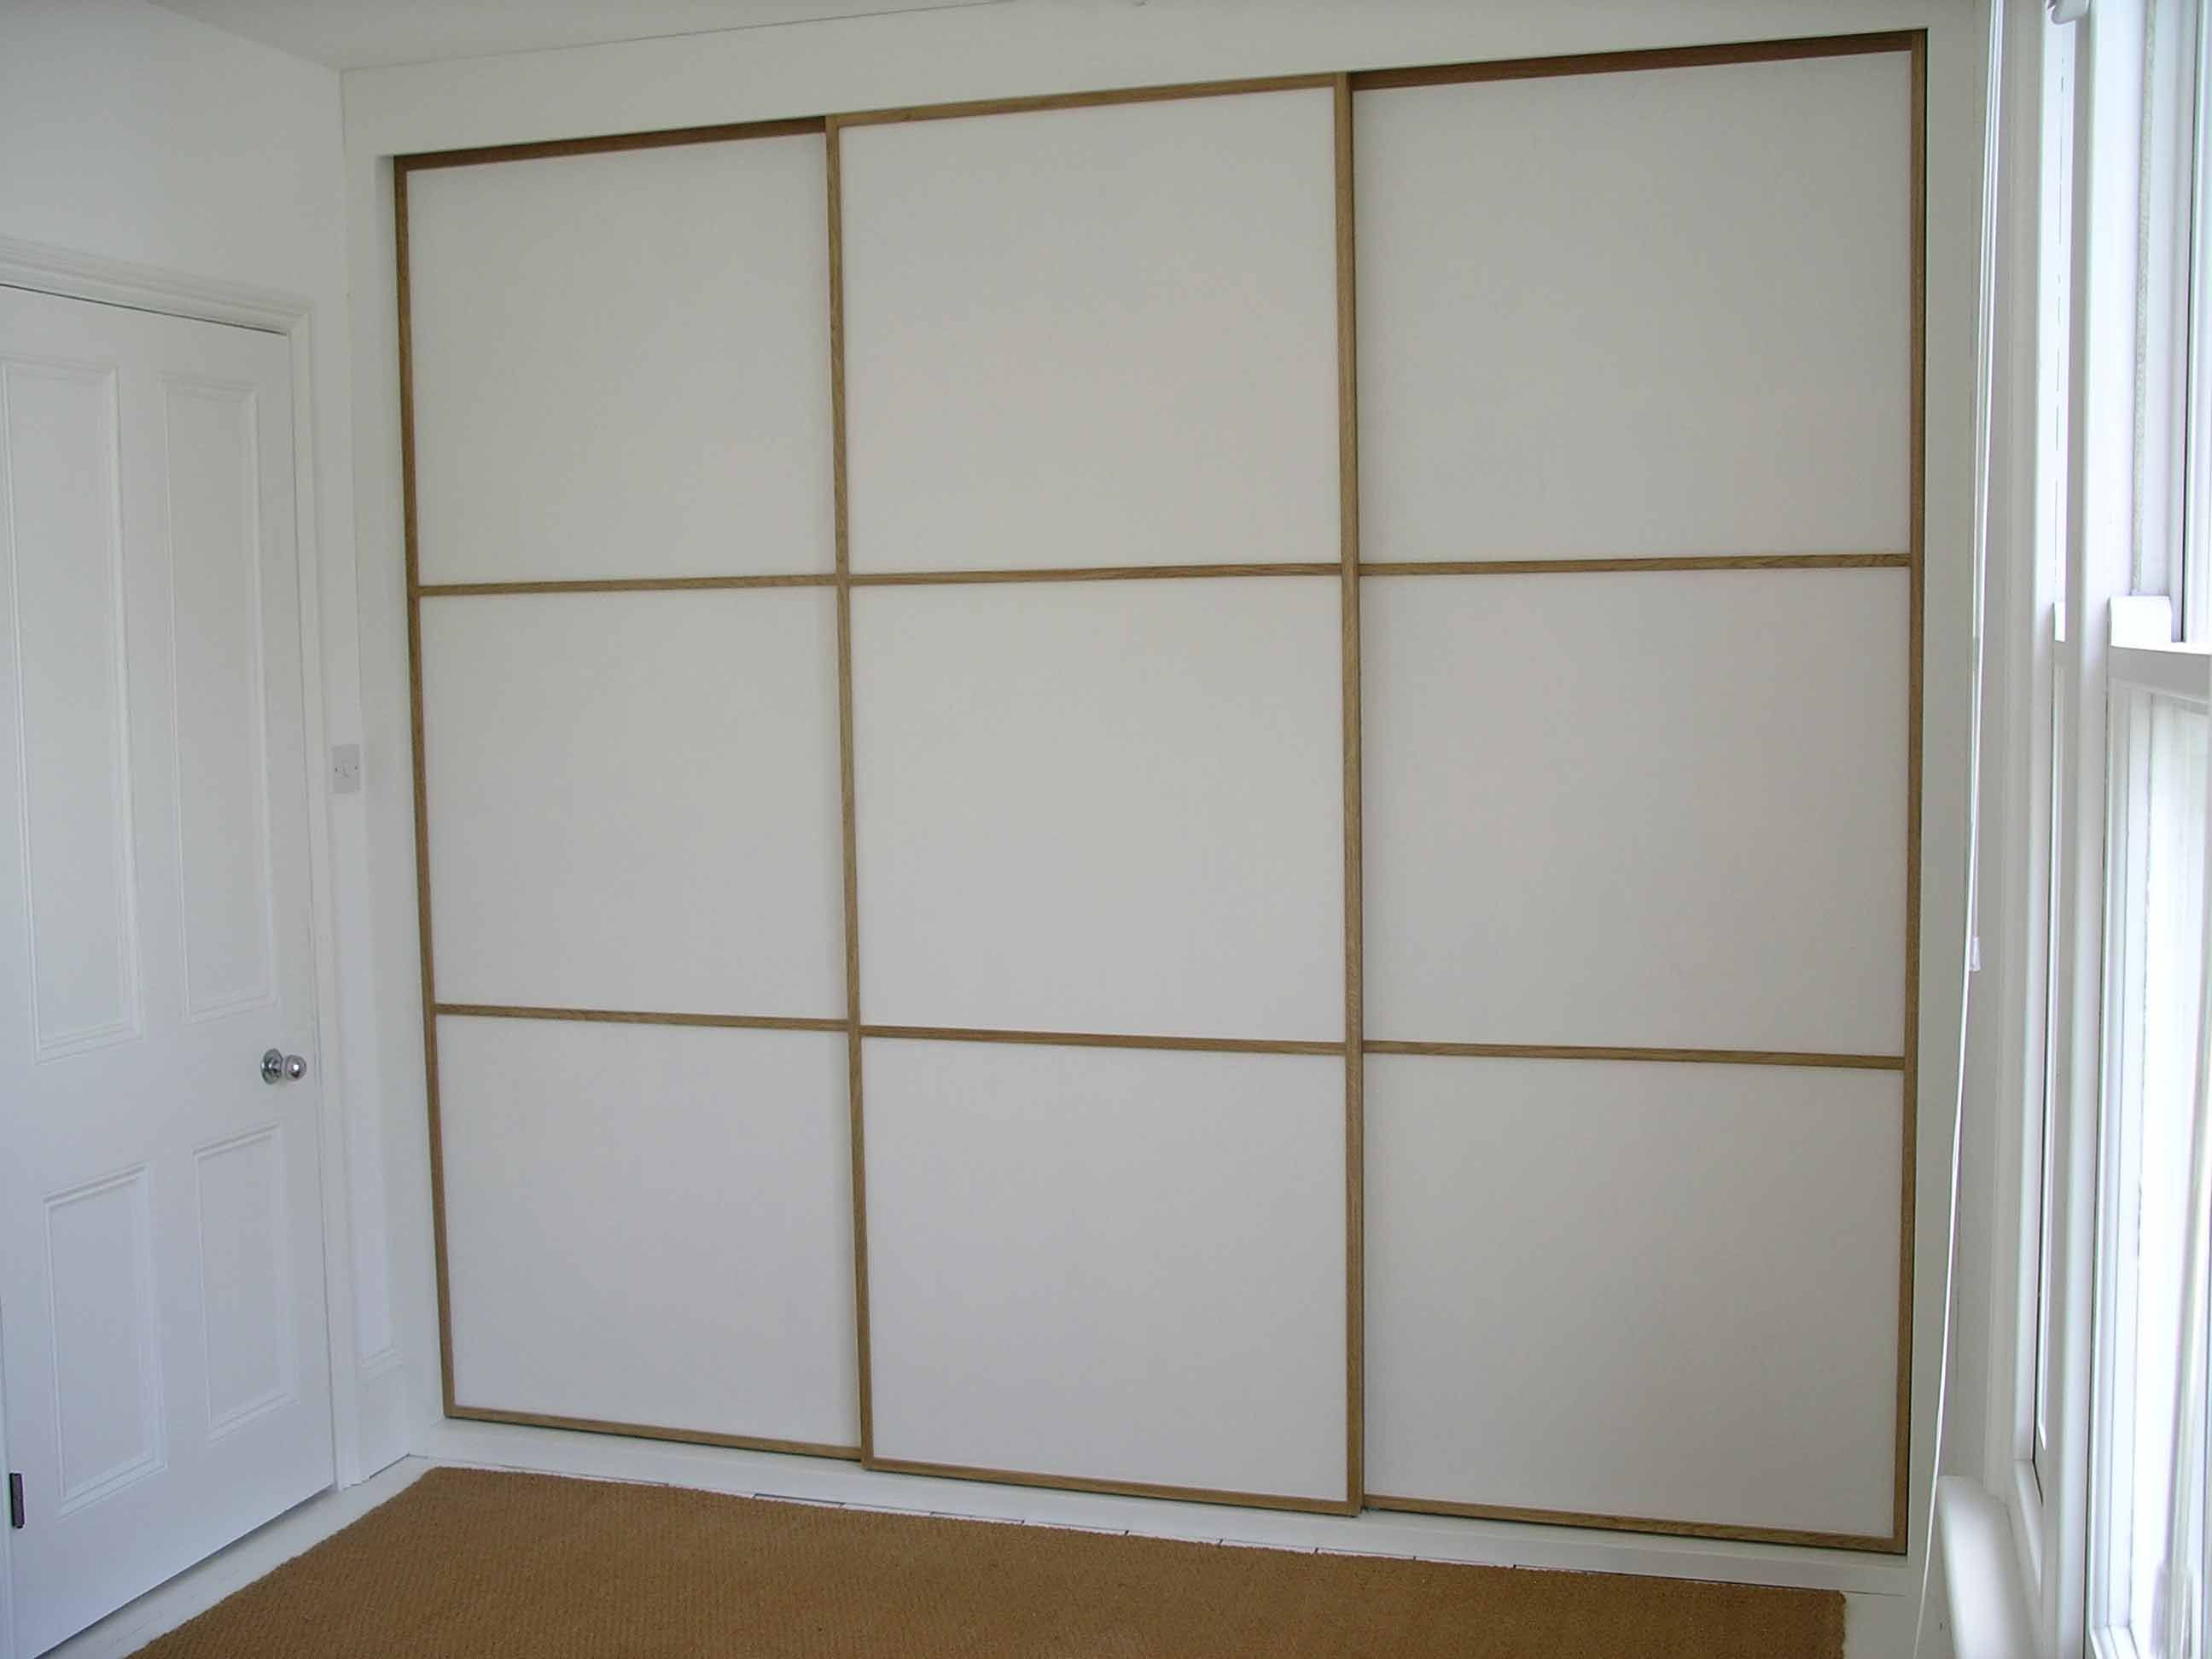 New doors for fitted wardrobes - Makers Of Handmade Painted And Hardwood Kitchens Home Offices Bespoke Fitted Cupboards Built In Wardrobes And Bookcases